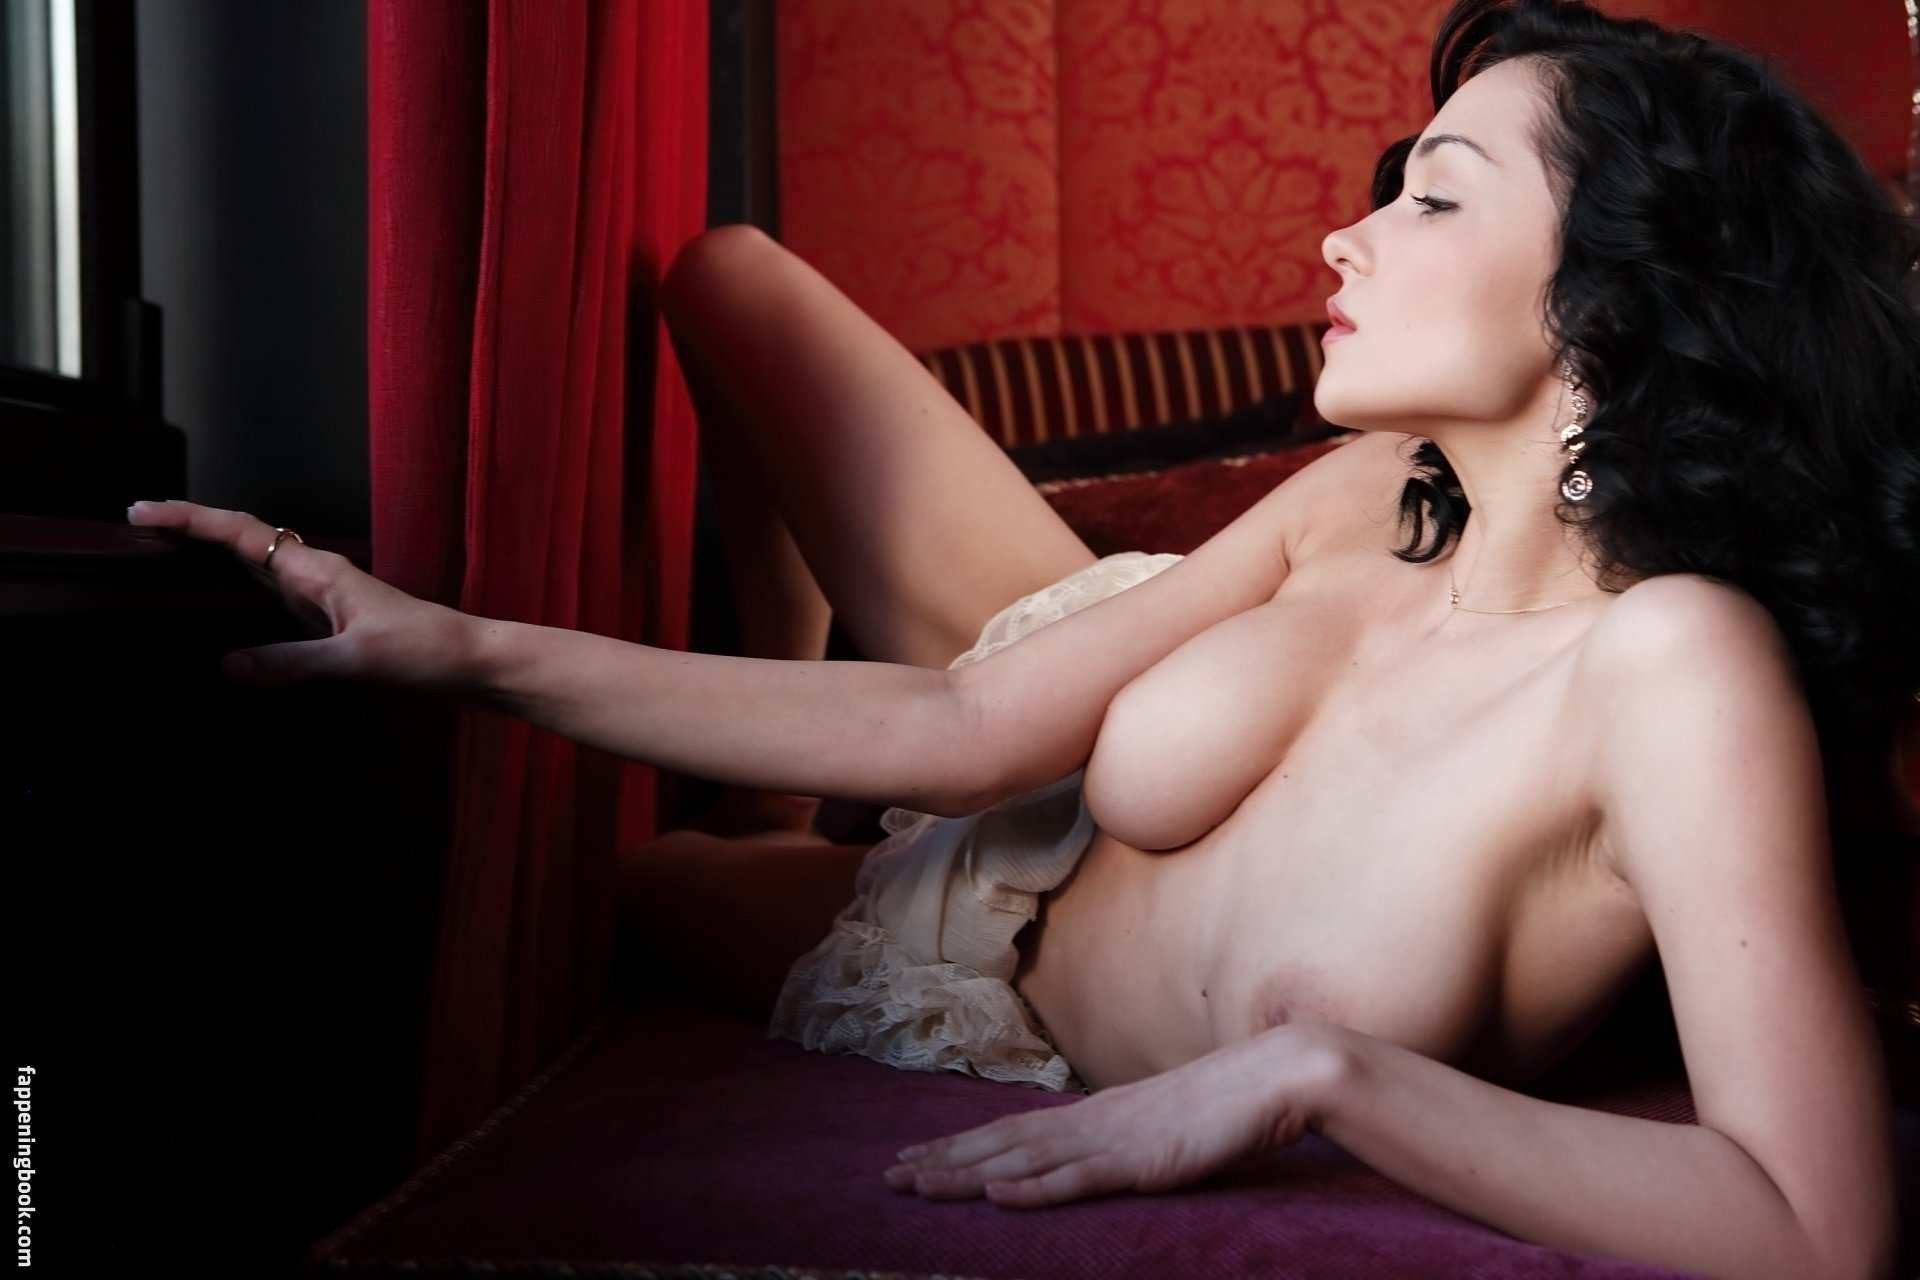 Katie fey nude with pierces tities